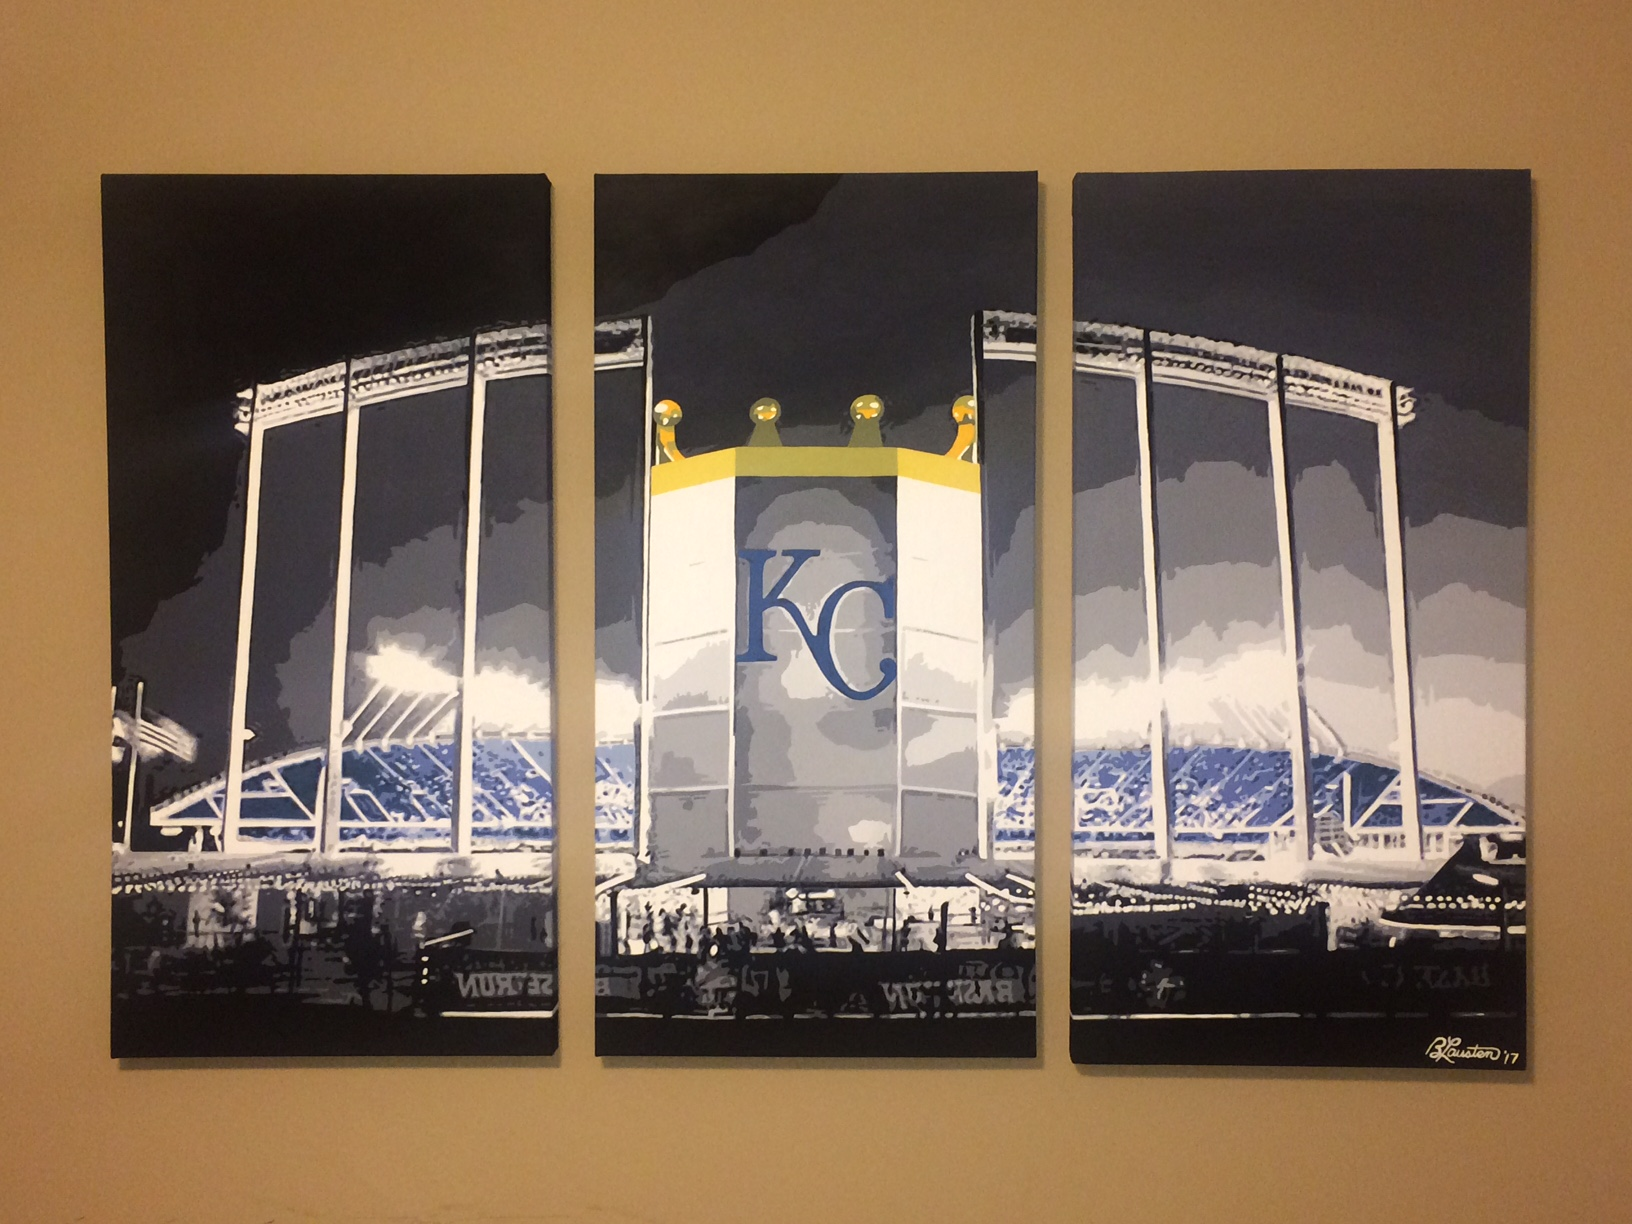 Kauffman Stadium Painting.jpeg